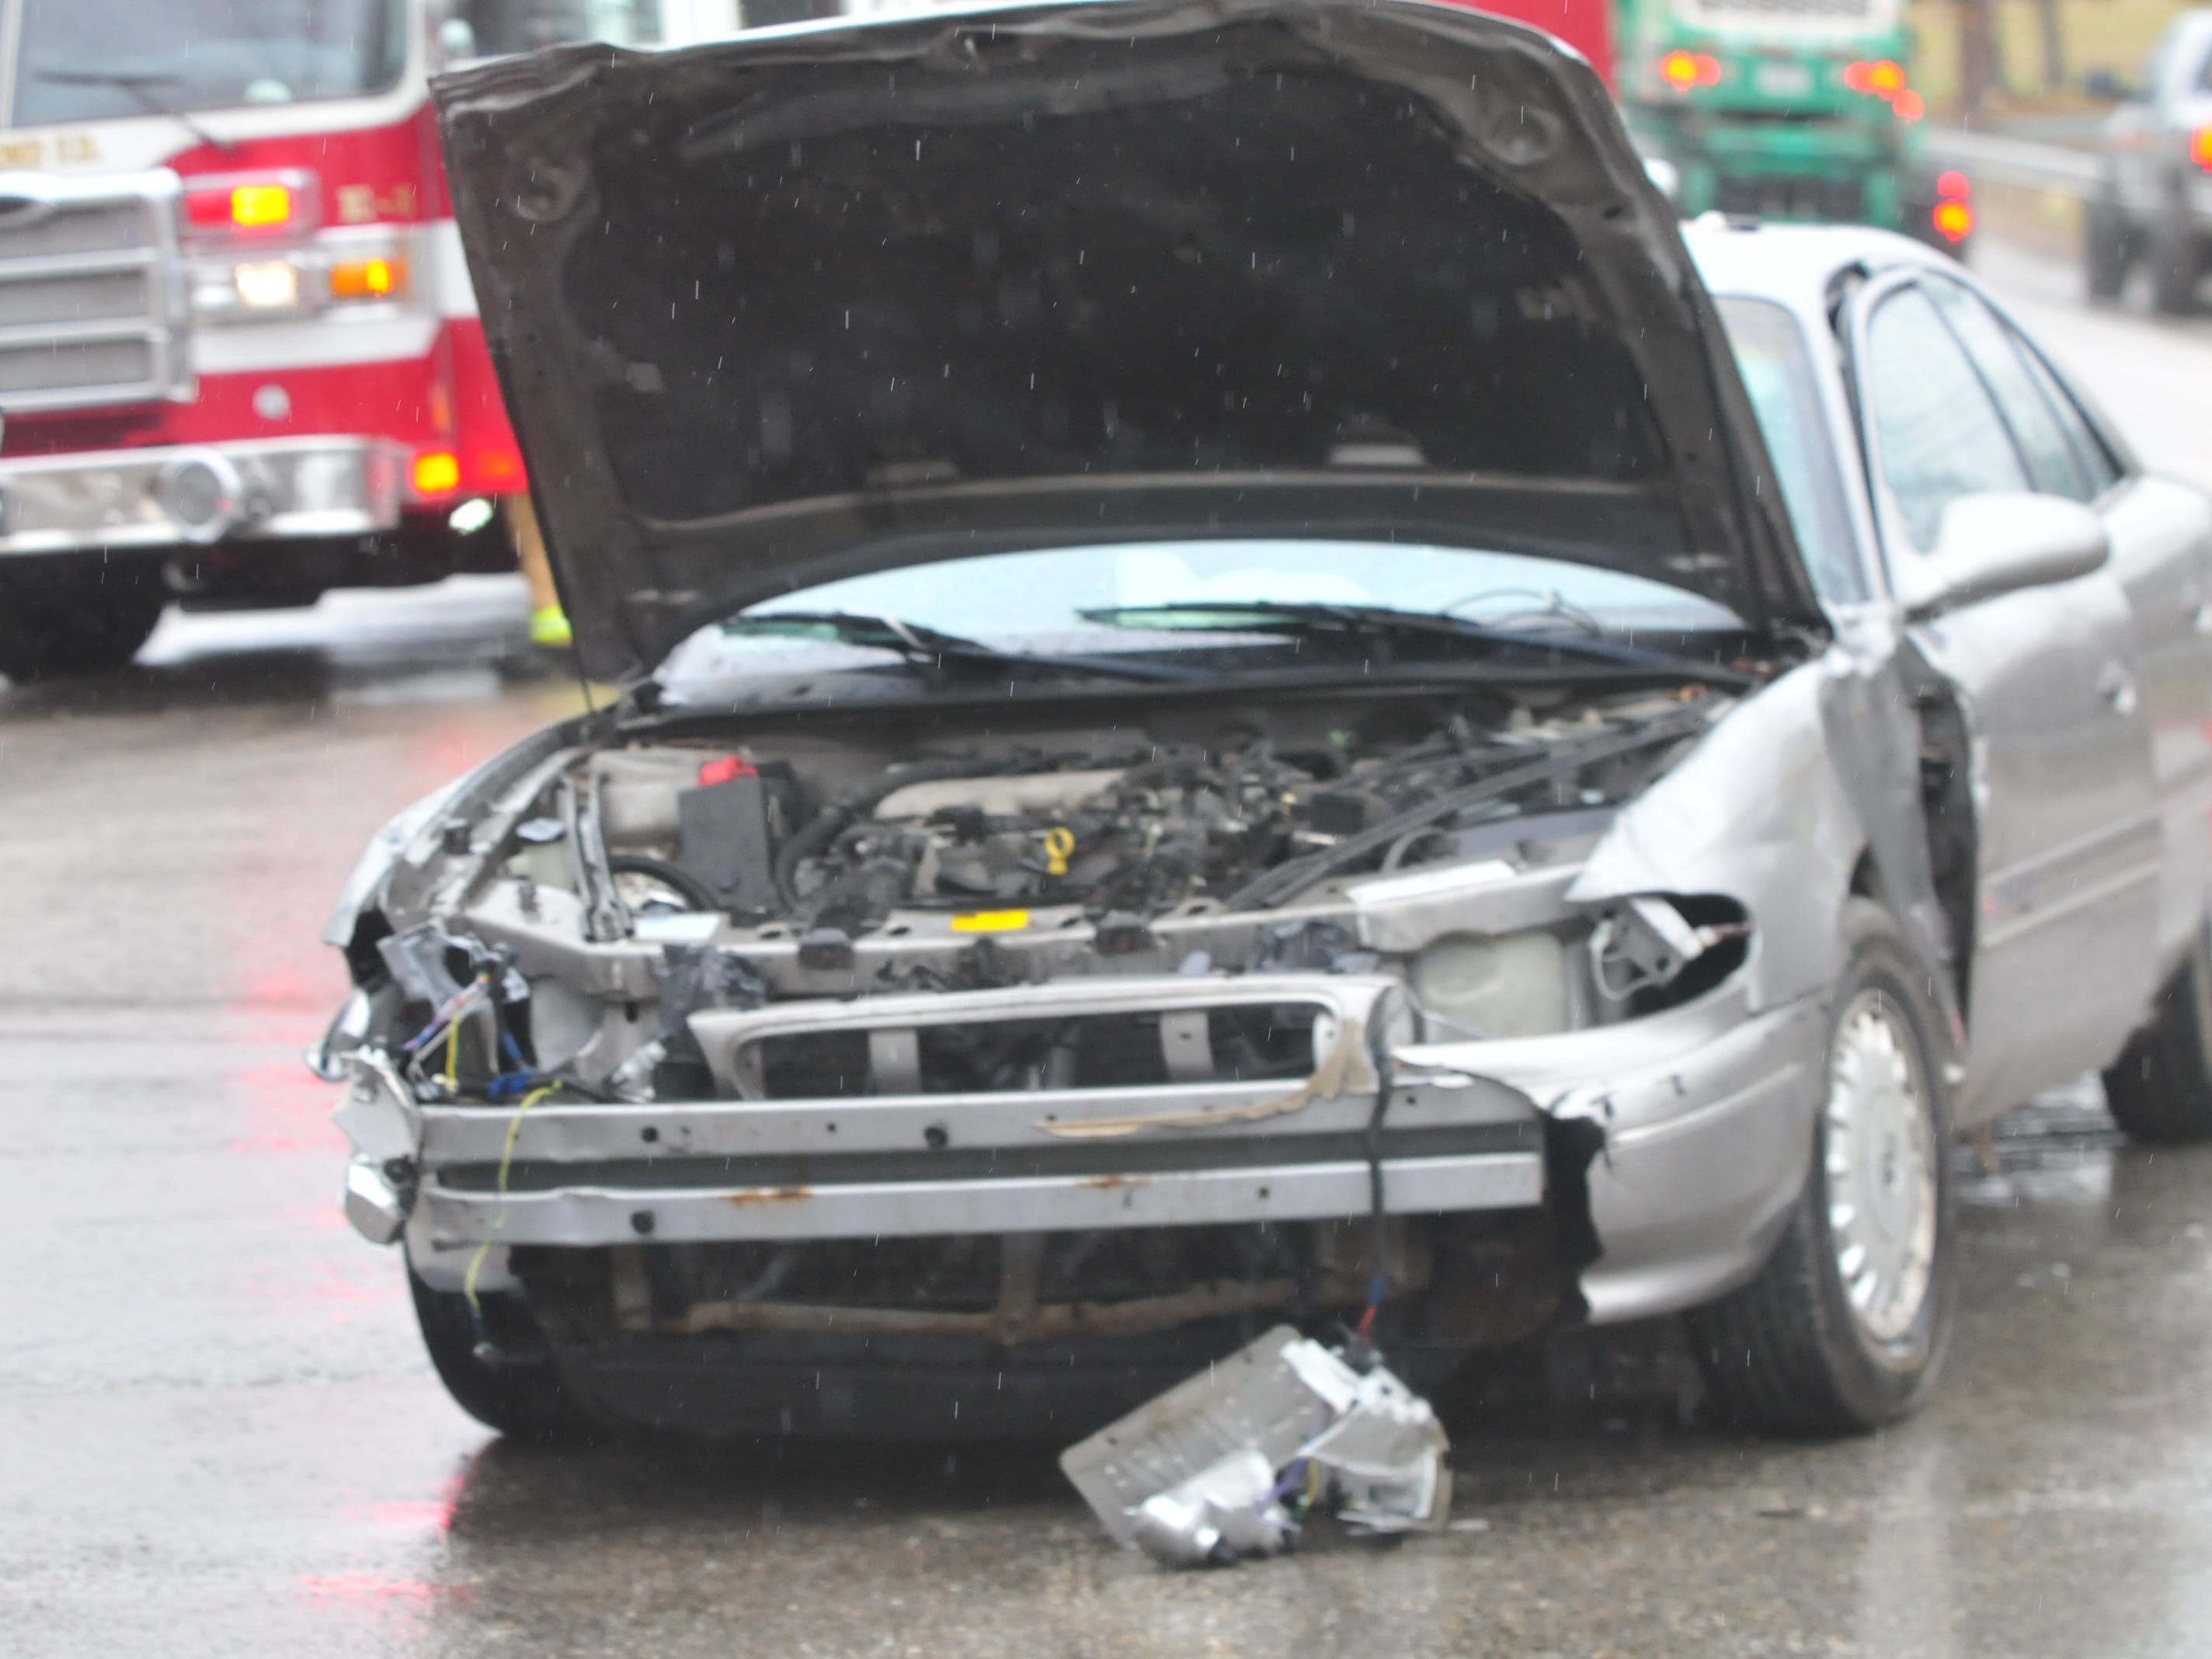 A Buick Century was damaged Thursday during a three-vehicle accident on Indiana 121 at Hayes Arboretum Road.